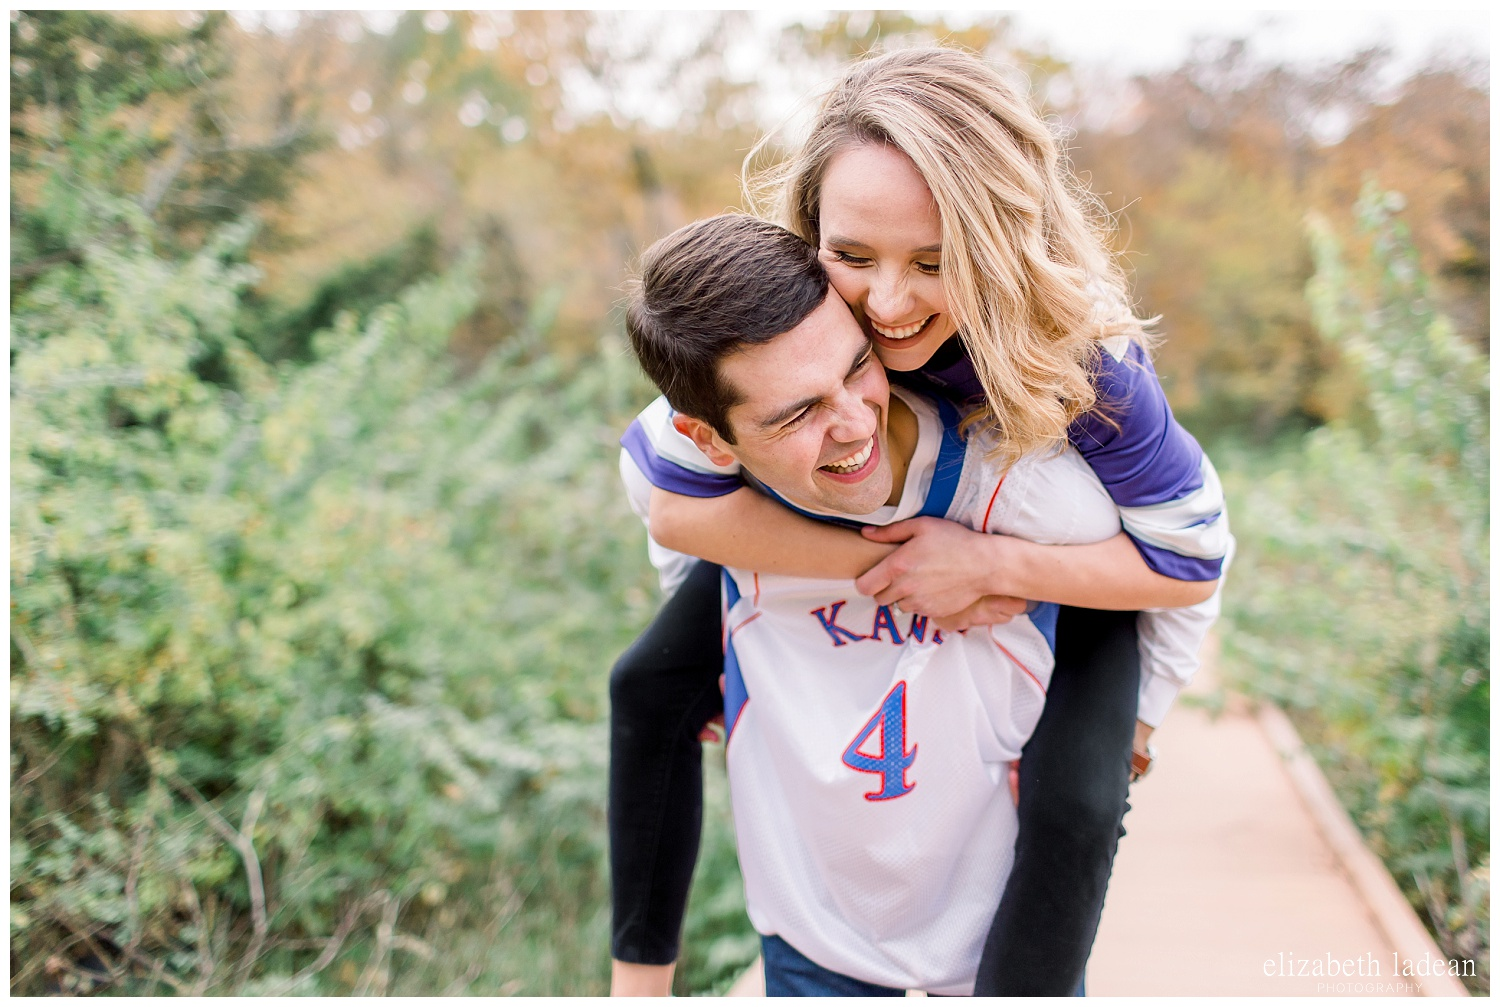 Colorful-Fall-Engagement-Photos-in-KC-C+B-2018-elizabeth-ladean-photography-photo_1796.jpg